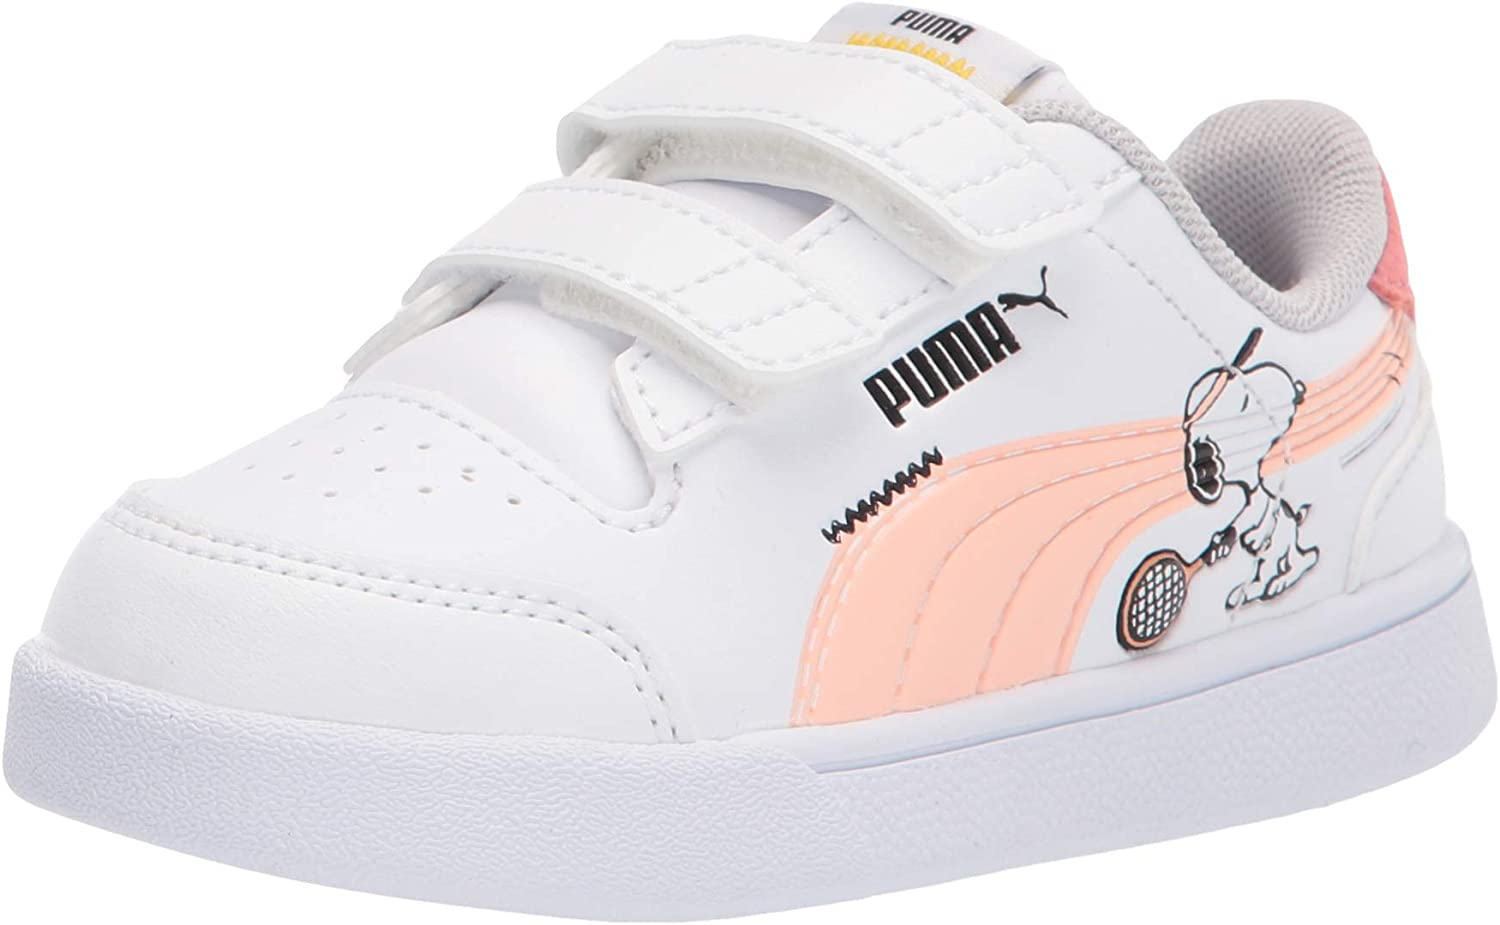 PUMA Unisex-Child Peanuts Shuffle and Sale price Sneaker Hook Loop Courier shipping free